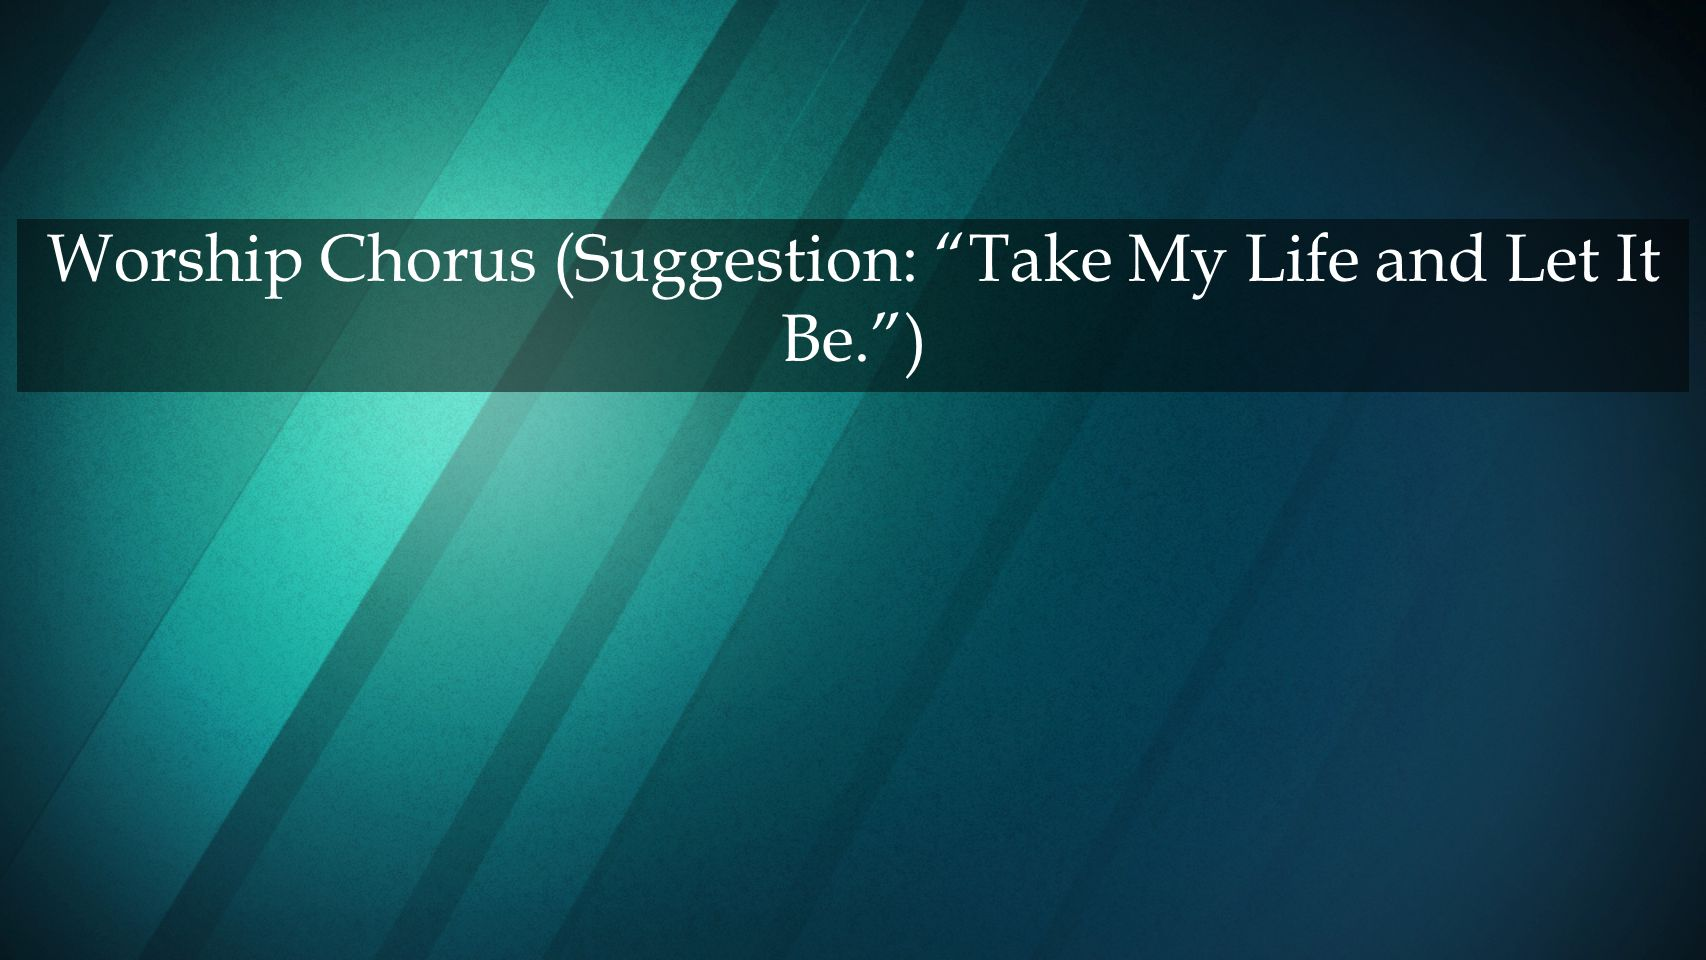 Worship Chorus (Suggestion: Take My Life and Let It Be. )